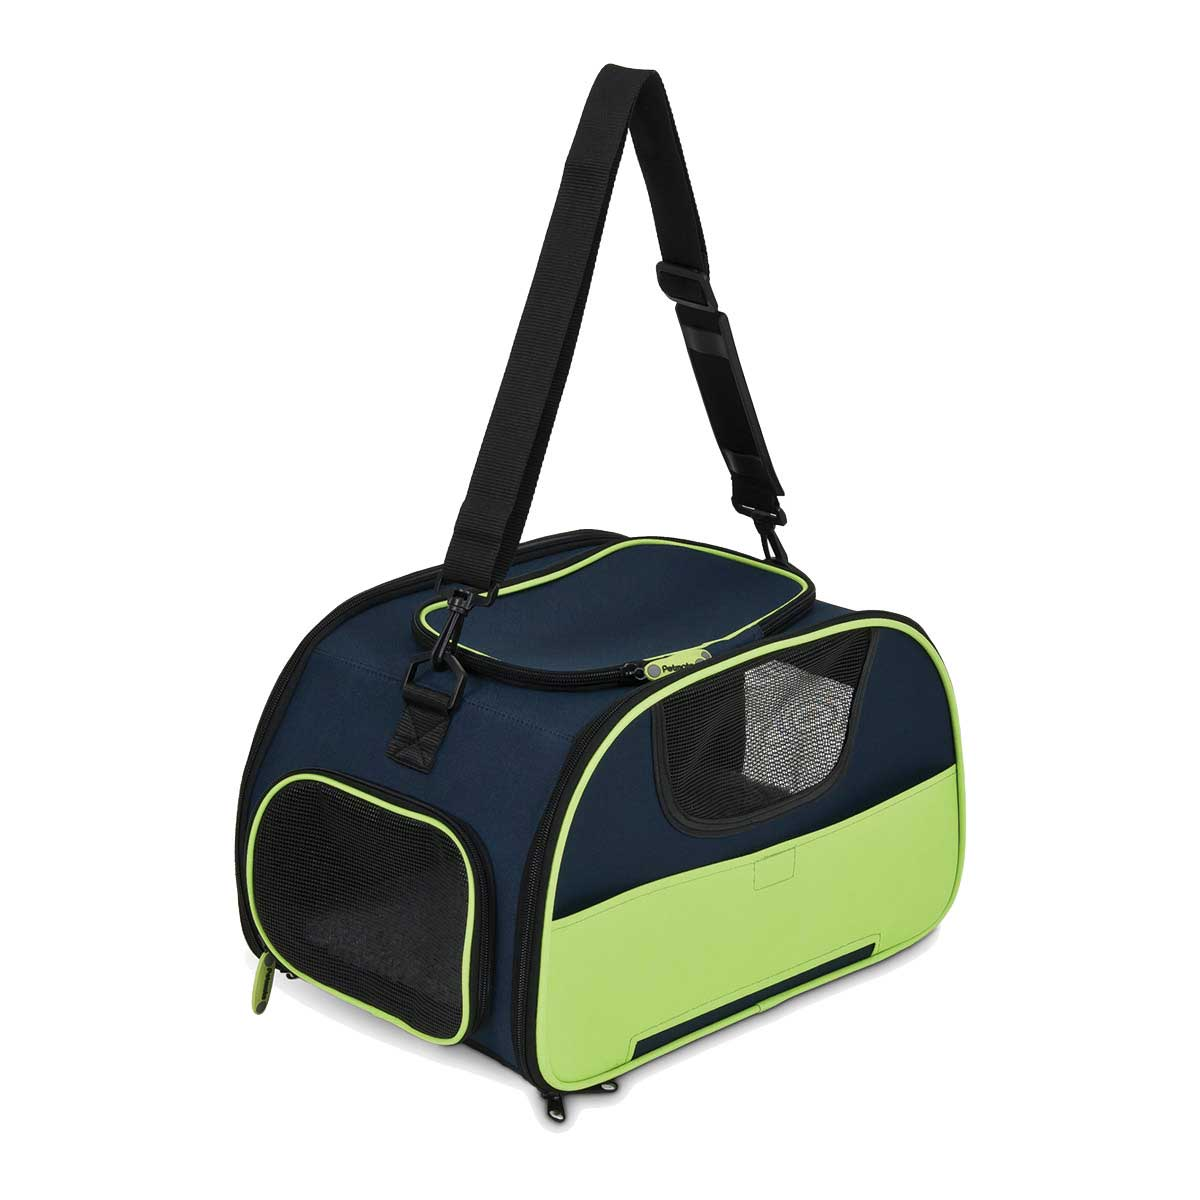 Petmate See & Fly Carrier 17 in L by 10.5 in W by 10 in height